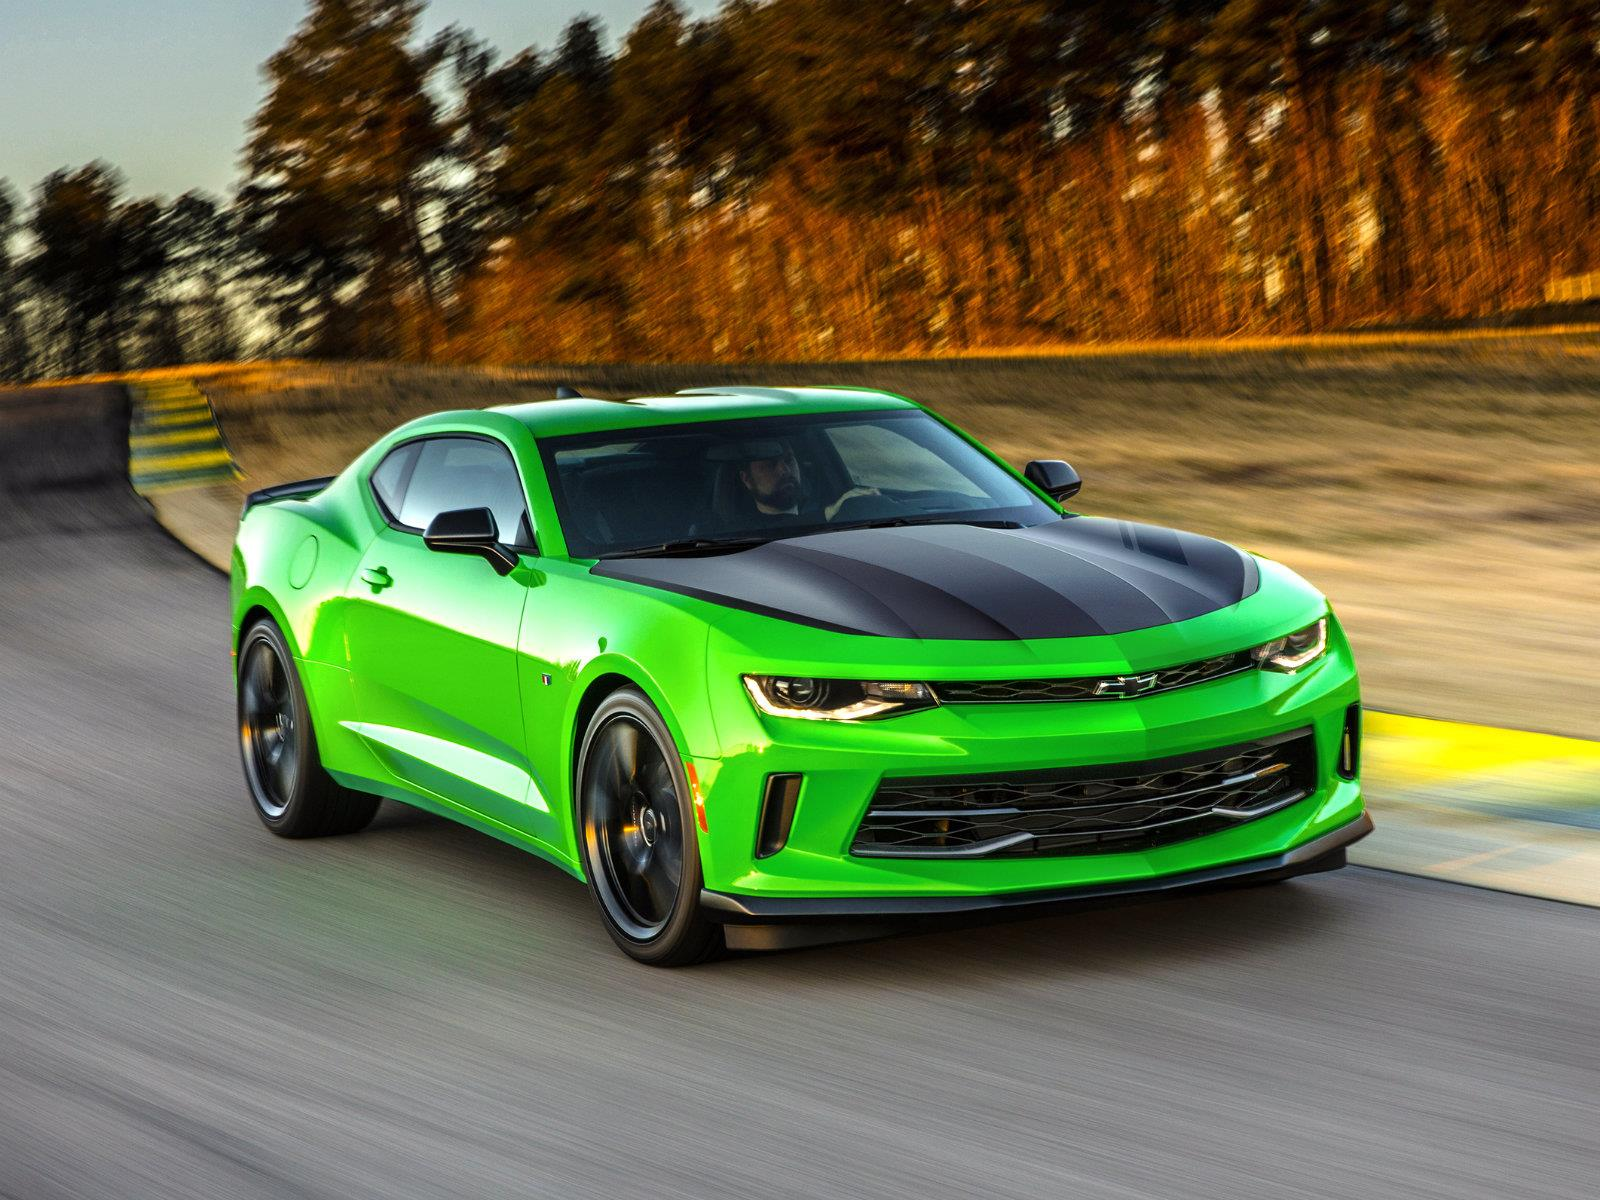 Chevrolet Camaro 1le 2017 Un Muscle Car Ideal Para La